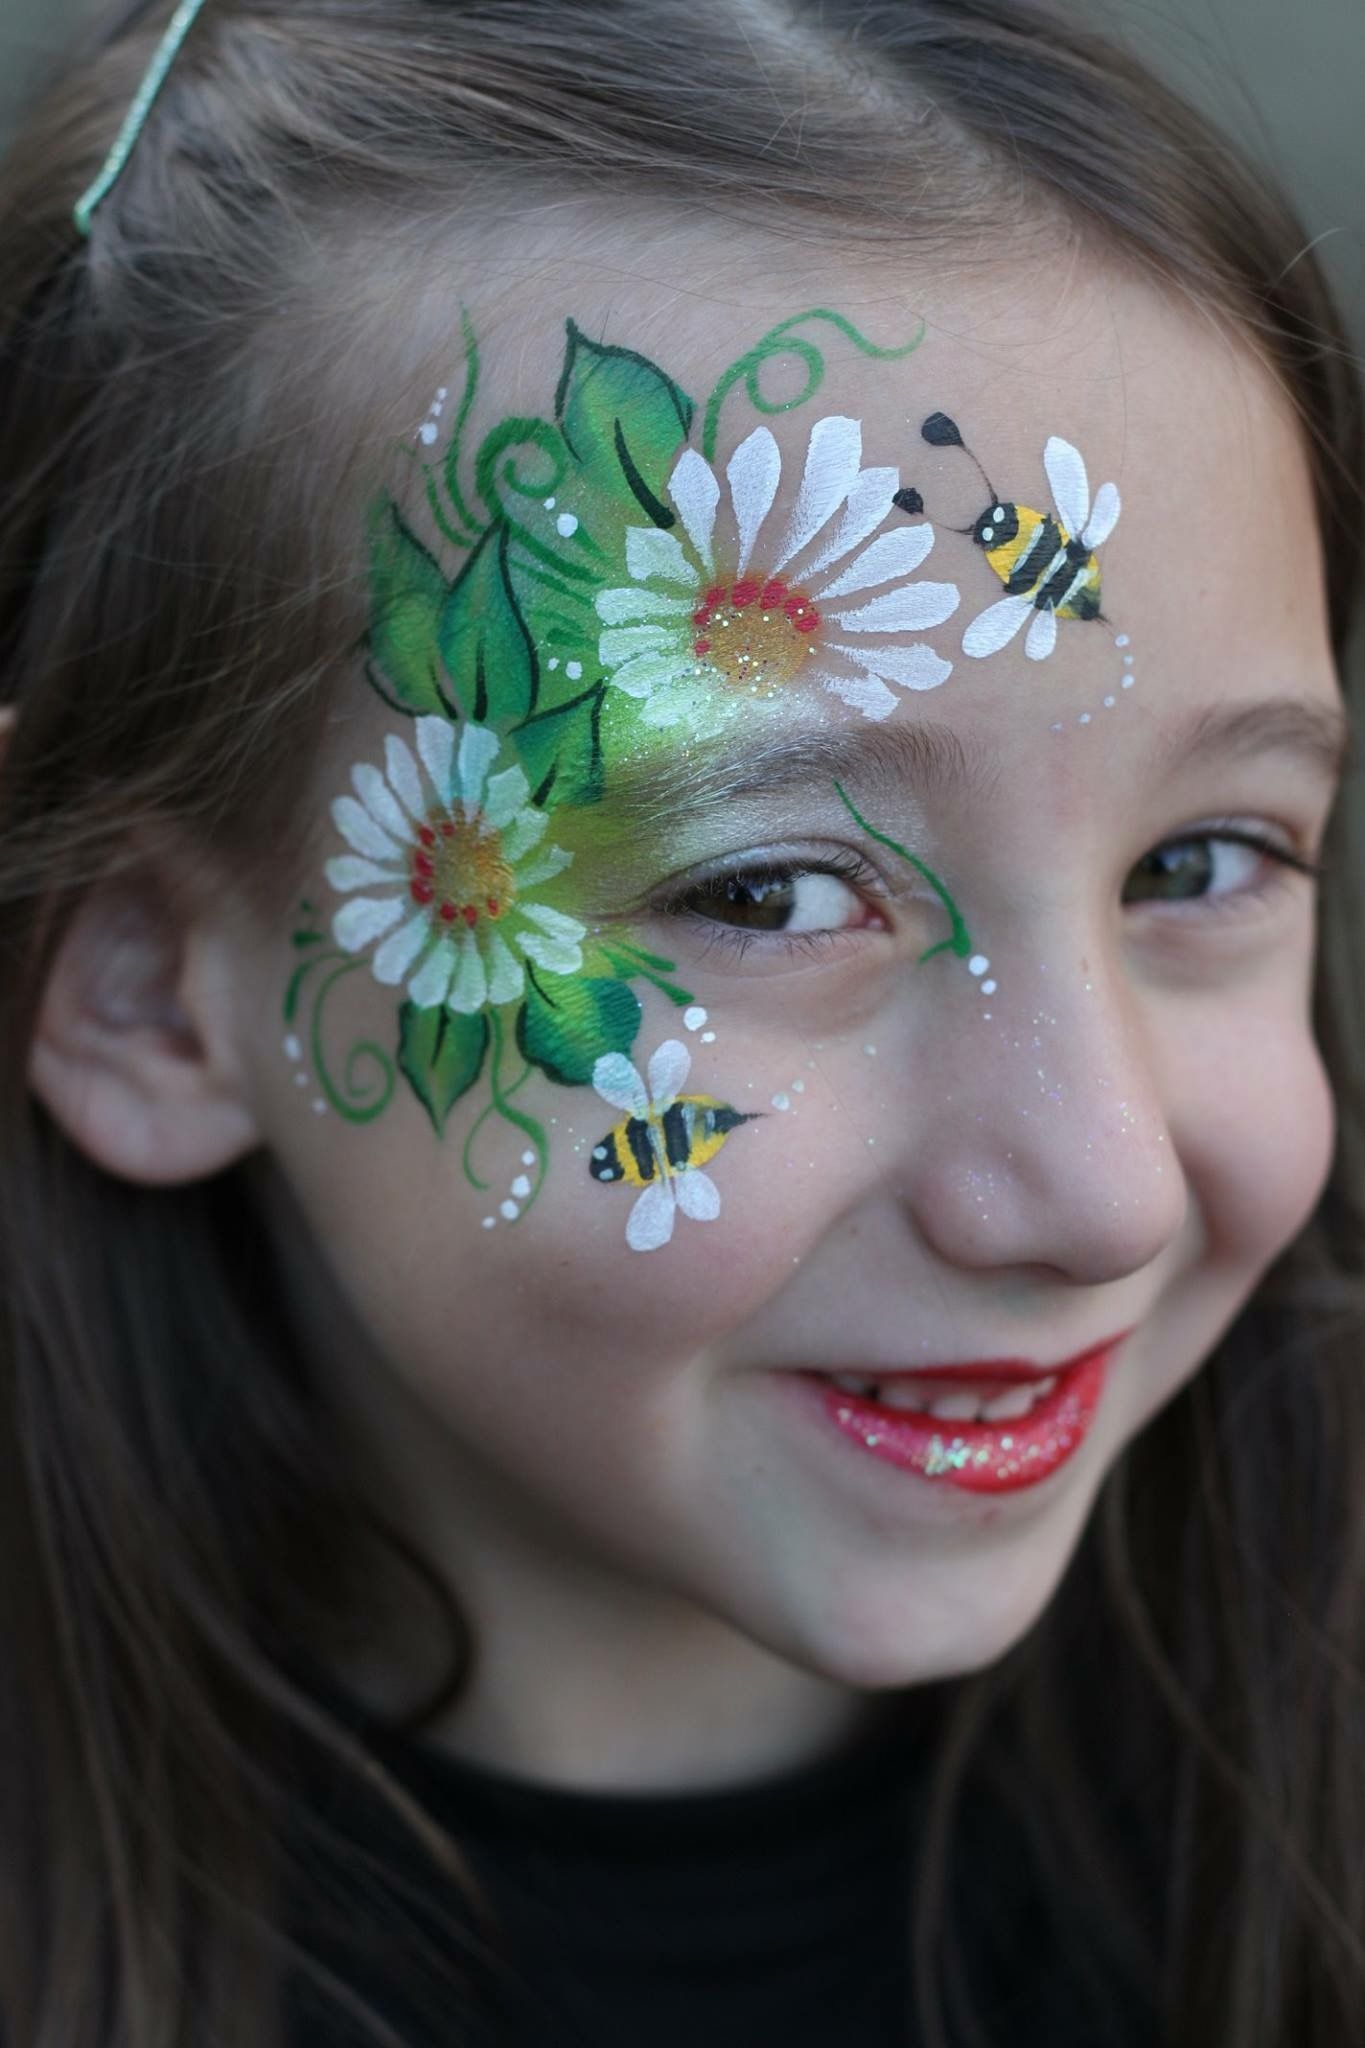 Edit Image Resize Image Crop Pictures And Appply Effect To Your Images Face Painting Designs Face Painting Flowers Face Painting